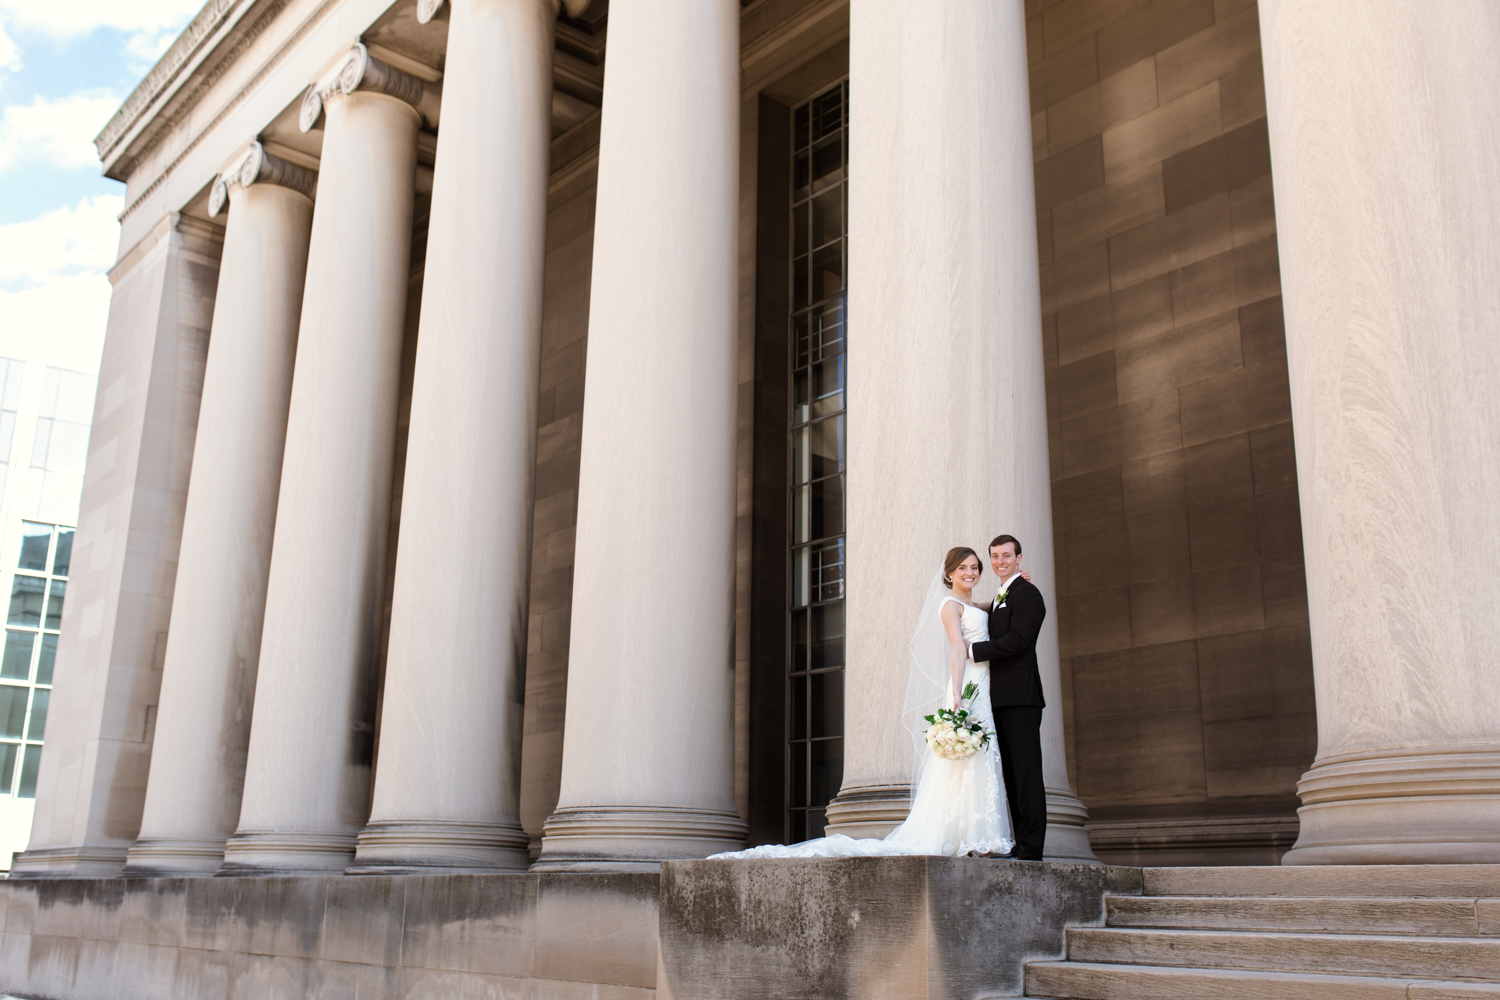 Pittsburgh Bride and Groom at the Columns